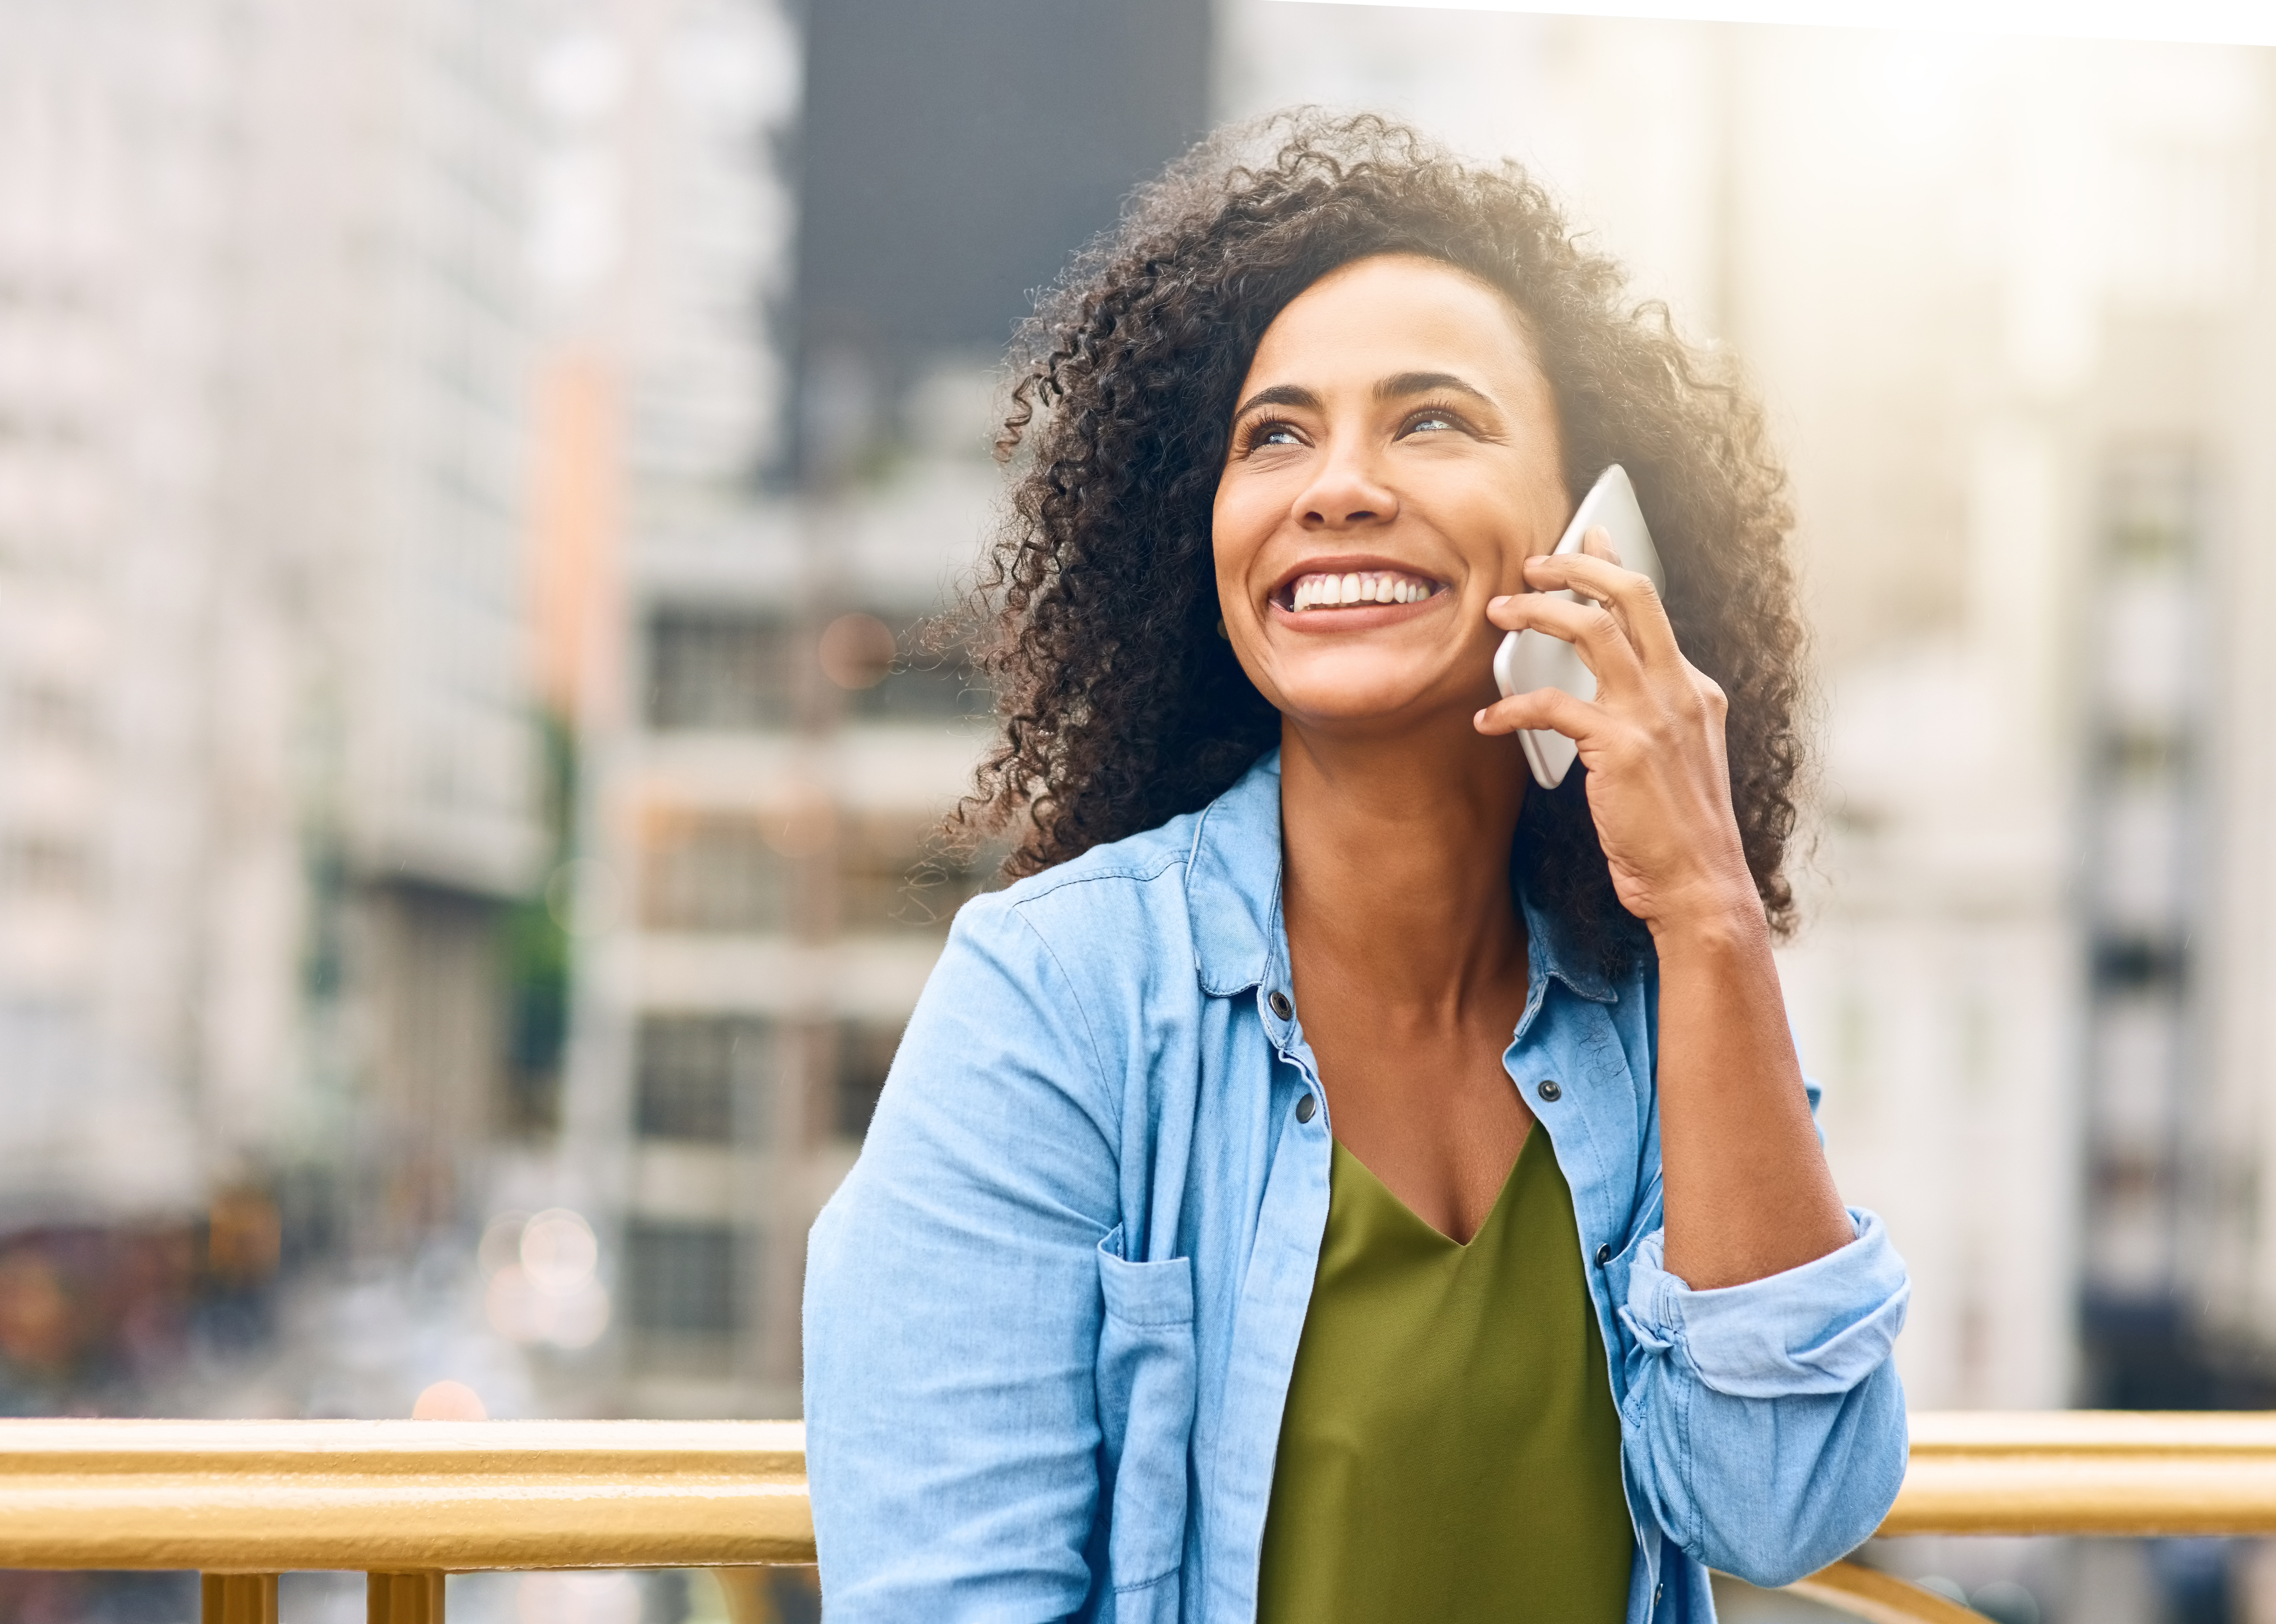 Woman in a city smiling and talking on the phone